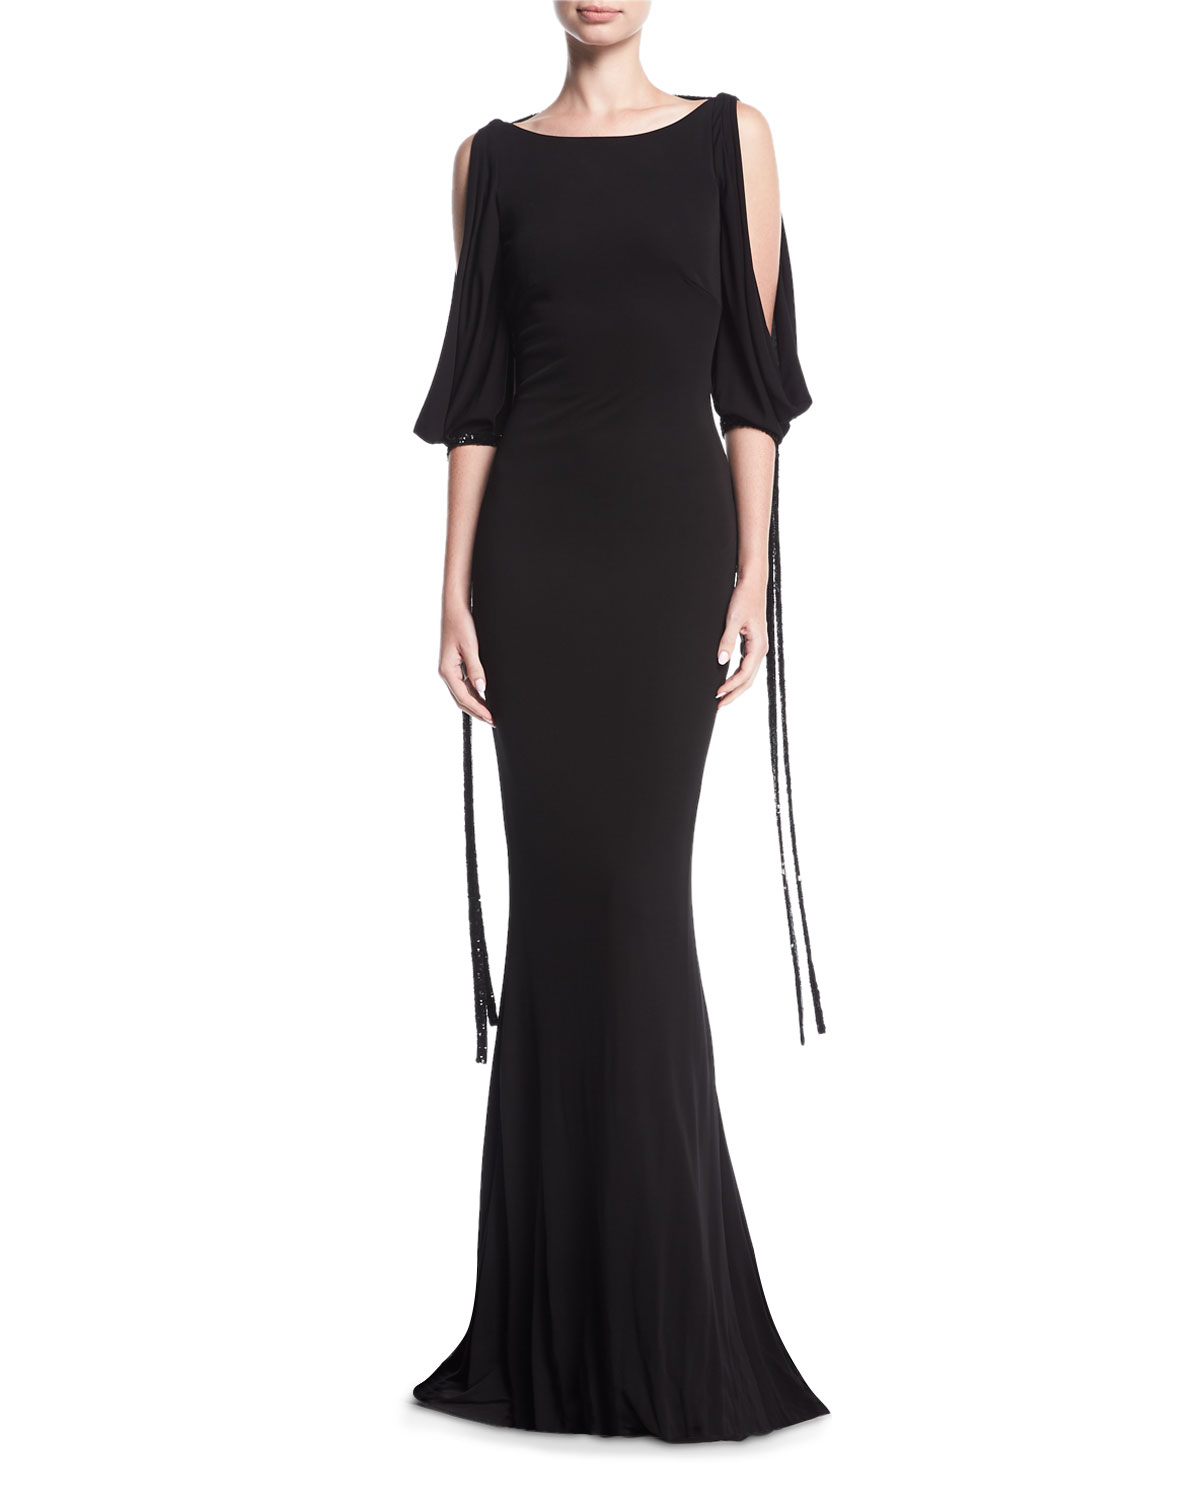 Puddle-Hem Draped Tie-Sleeve Jersey Evening Gown